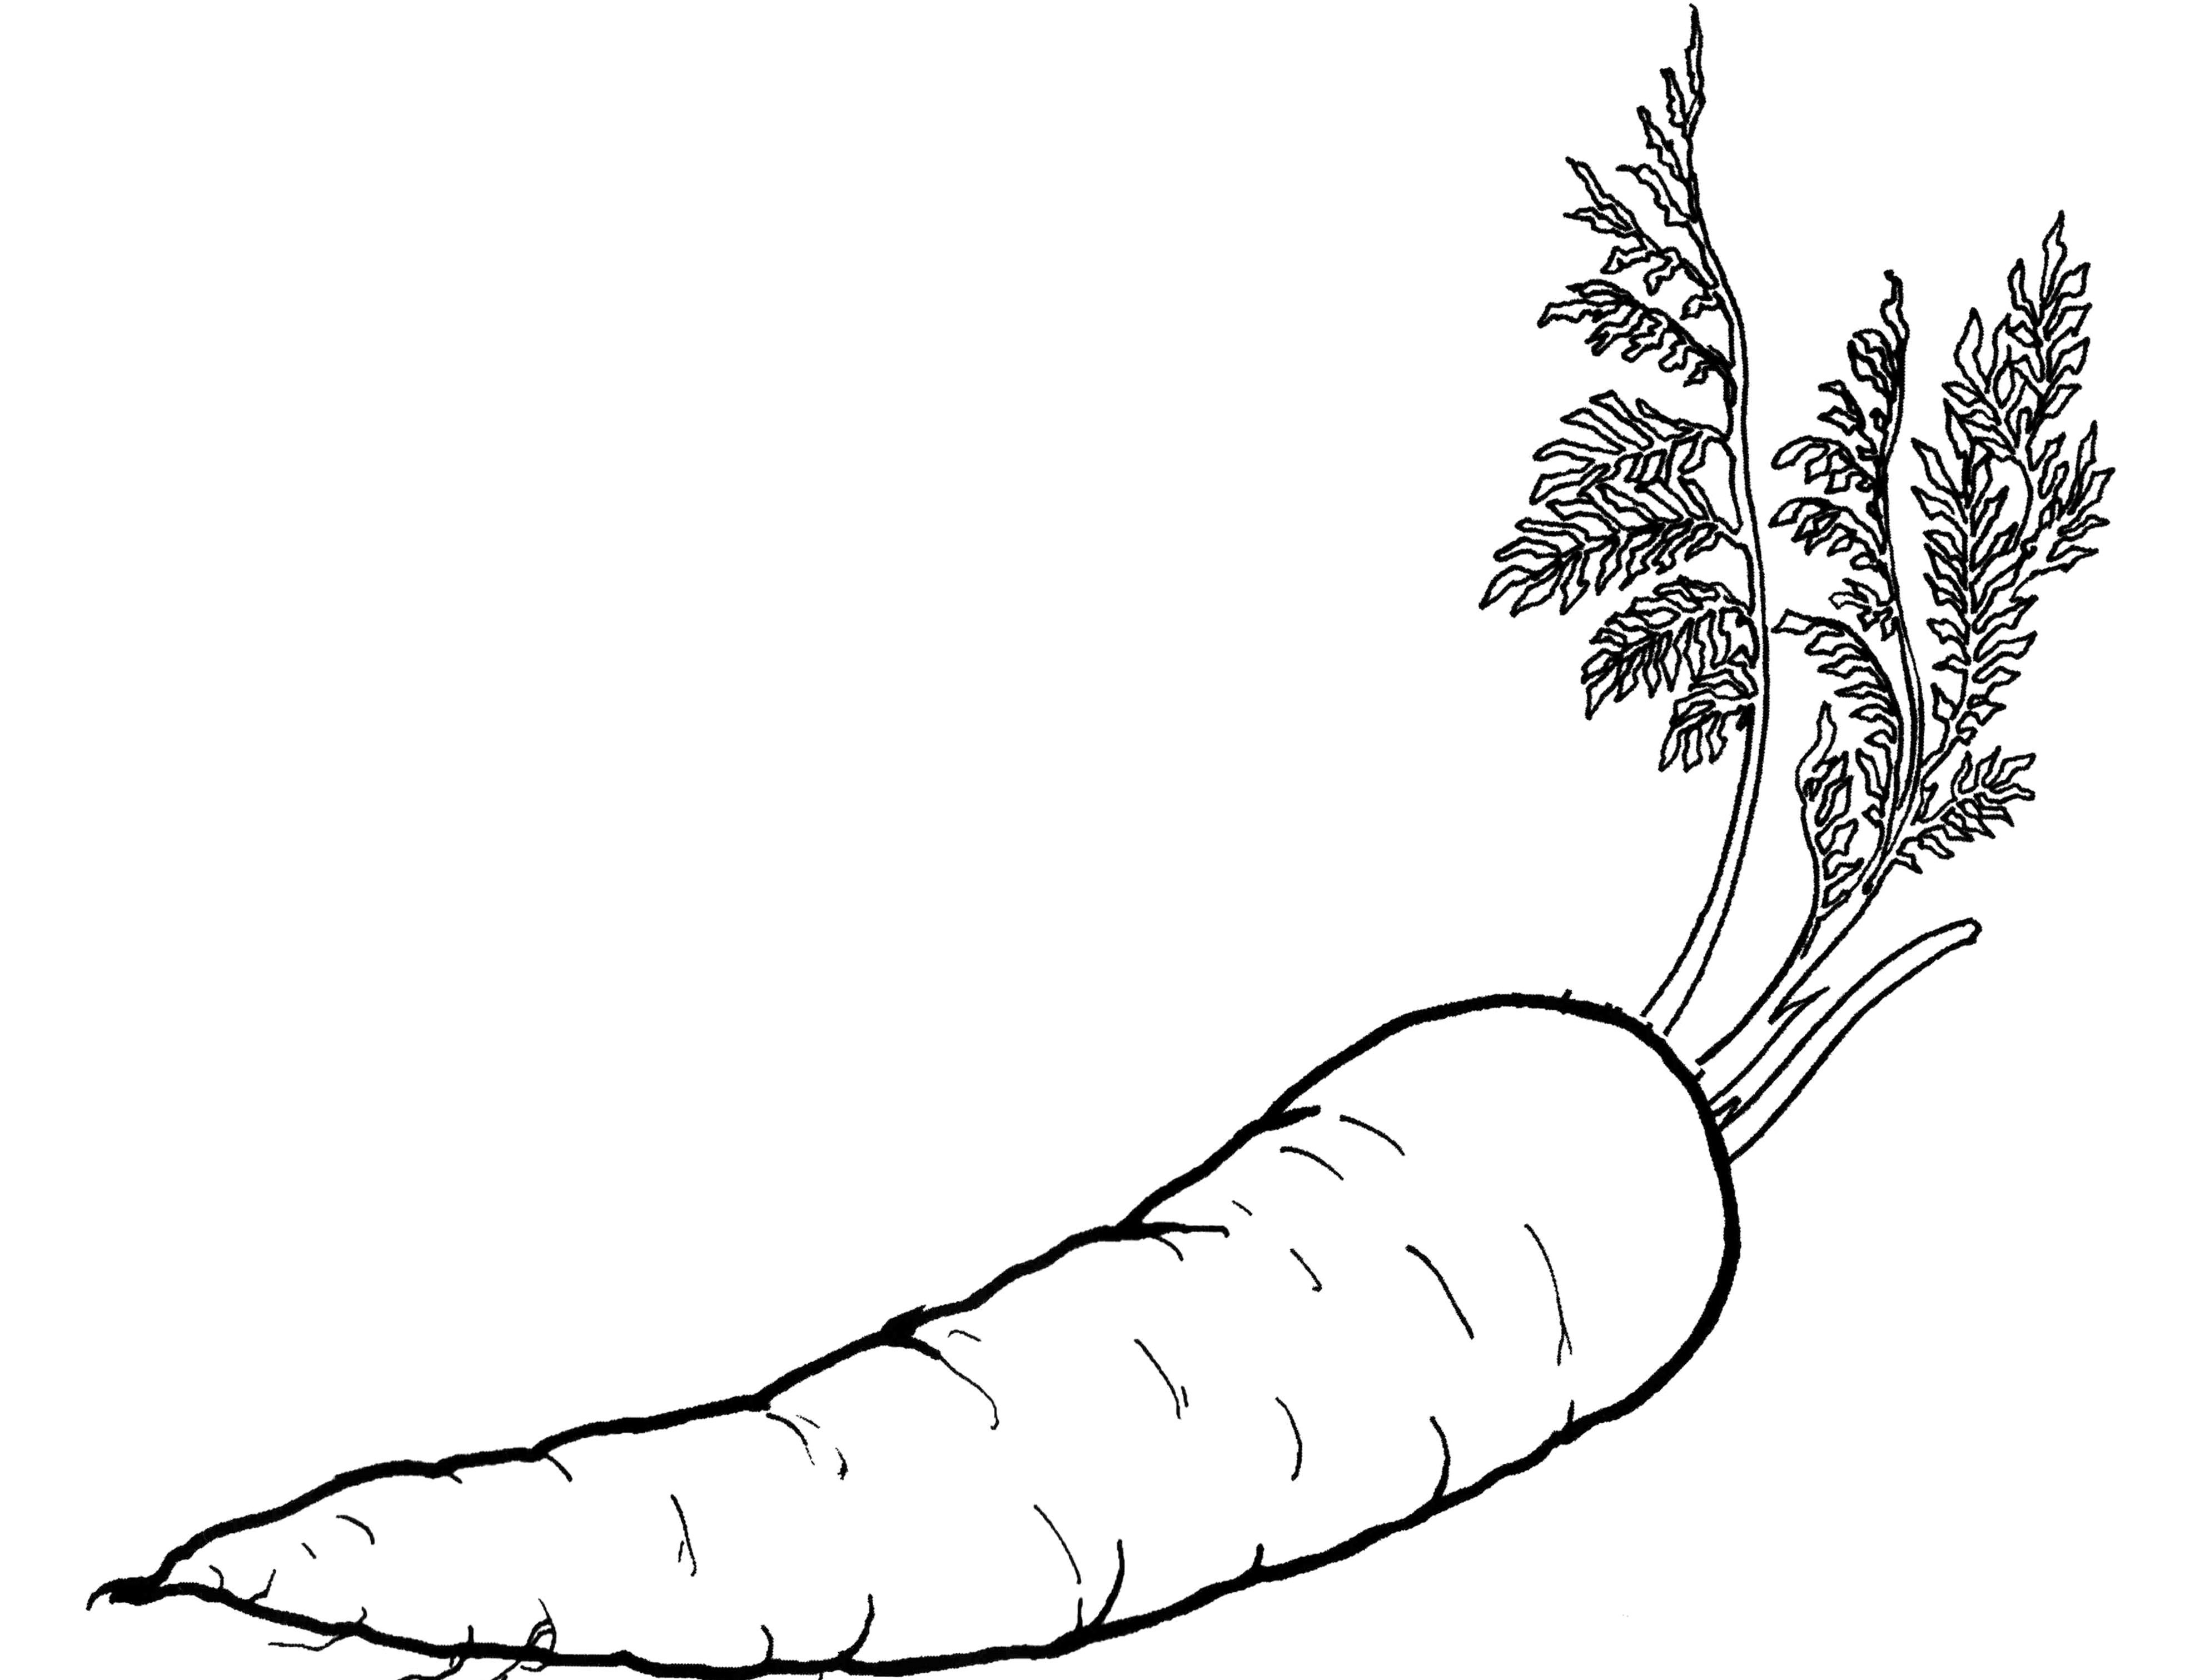 Carrots Coloring Page Of Vegetables Carrots And Vegetables Colouring Pages Page 2